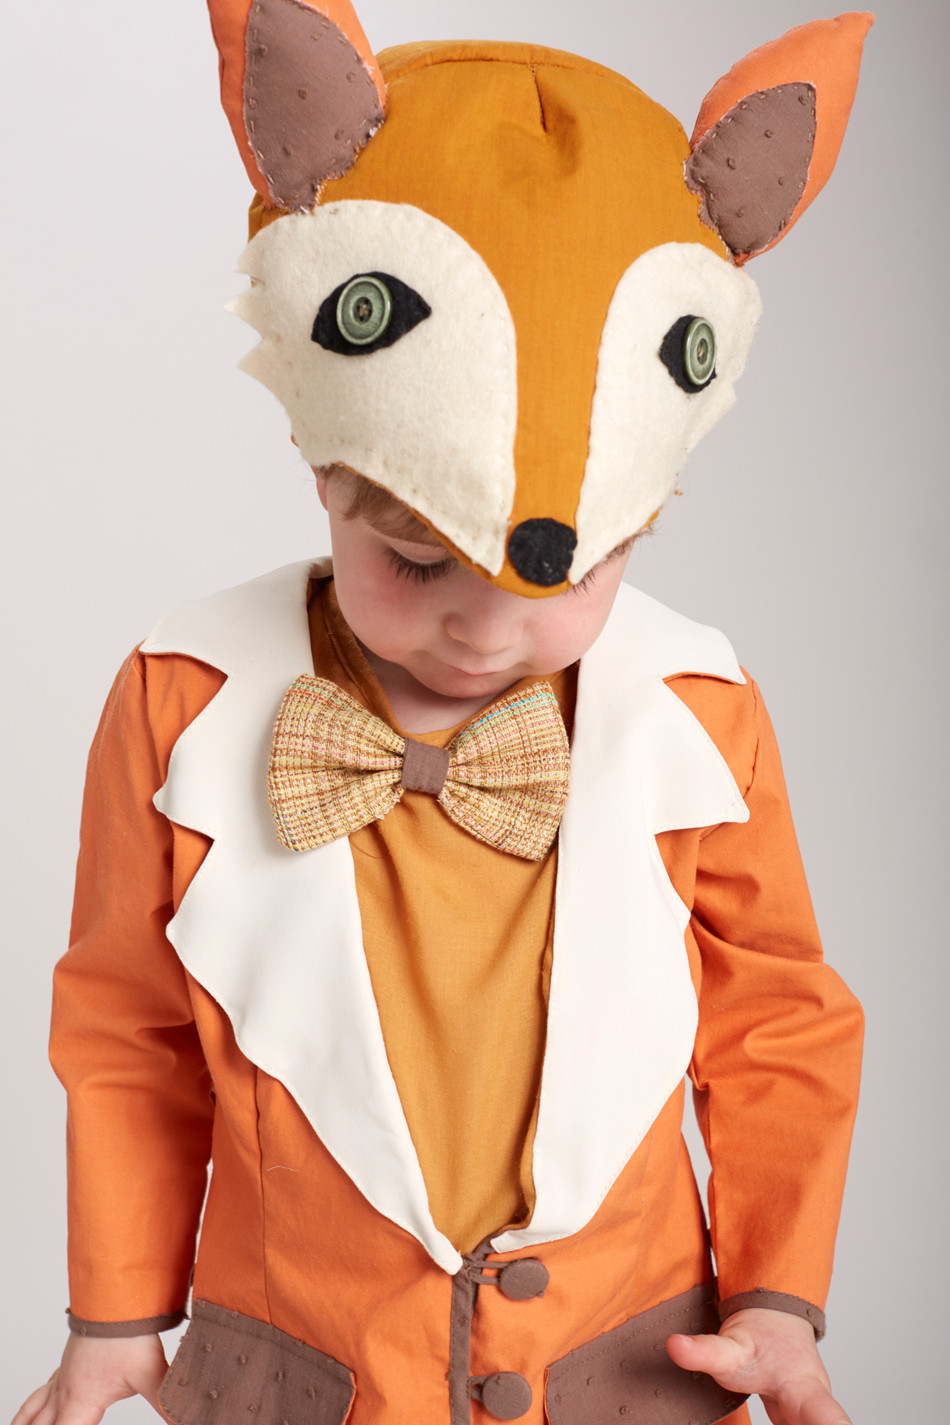 THIS KID IS IN A FOX COSTUME.